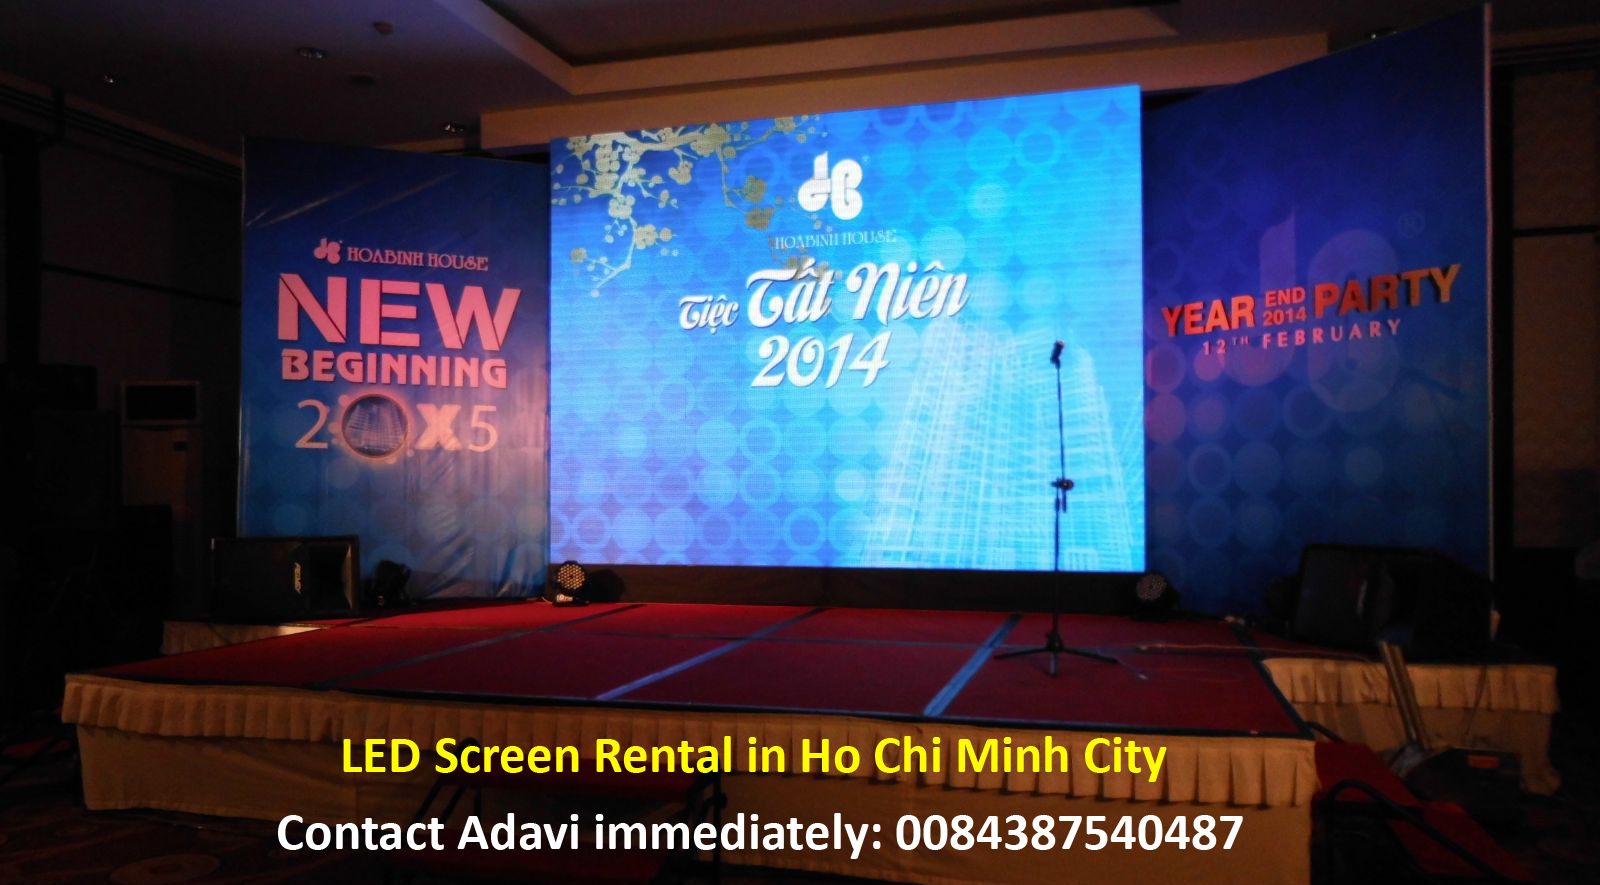 LED Screen Rental in Ho Chi Minh City - 0084387540487